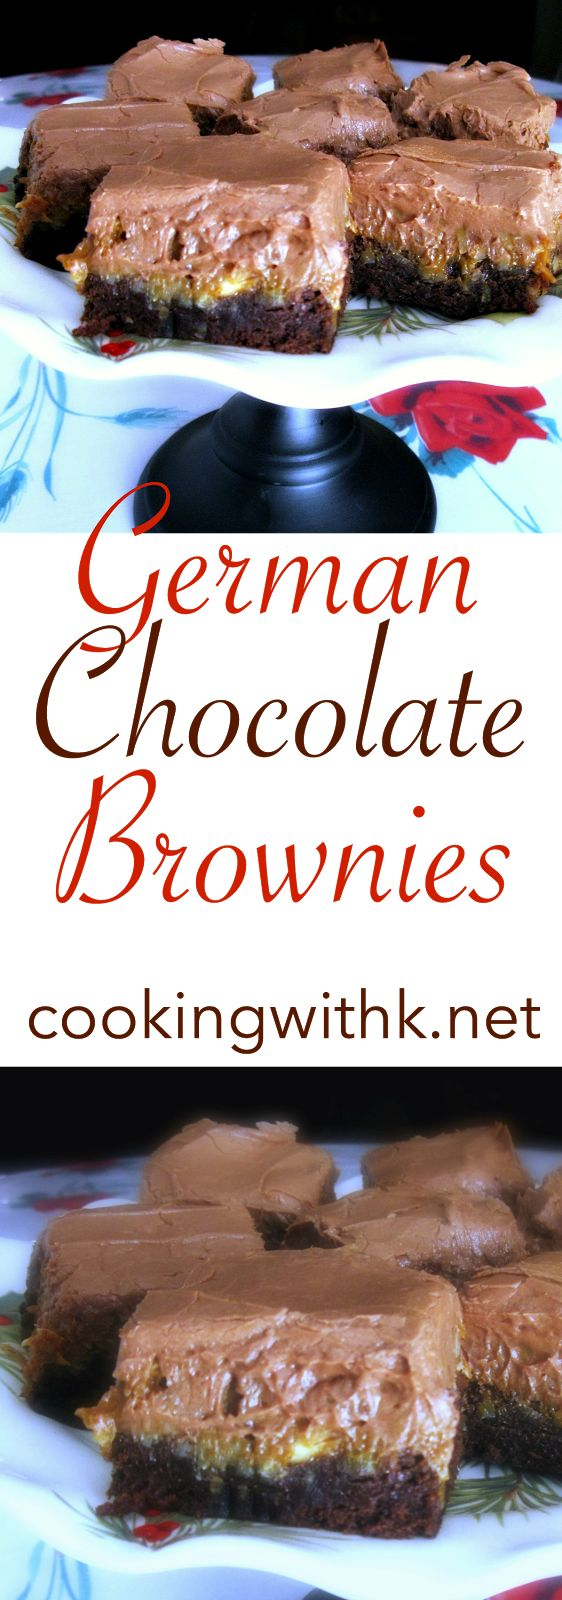 German Chocolate Brownies, a German sweet chocolate bar in the brownie layer topped with a gooey coconut pecan layer and frosted with a luscious chocolate frosting.  A decadent dessert for the holidays!